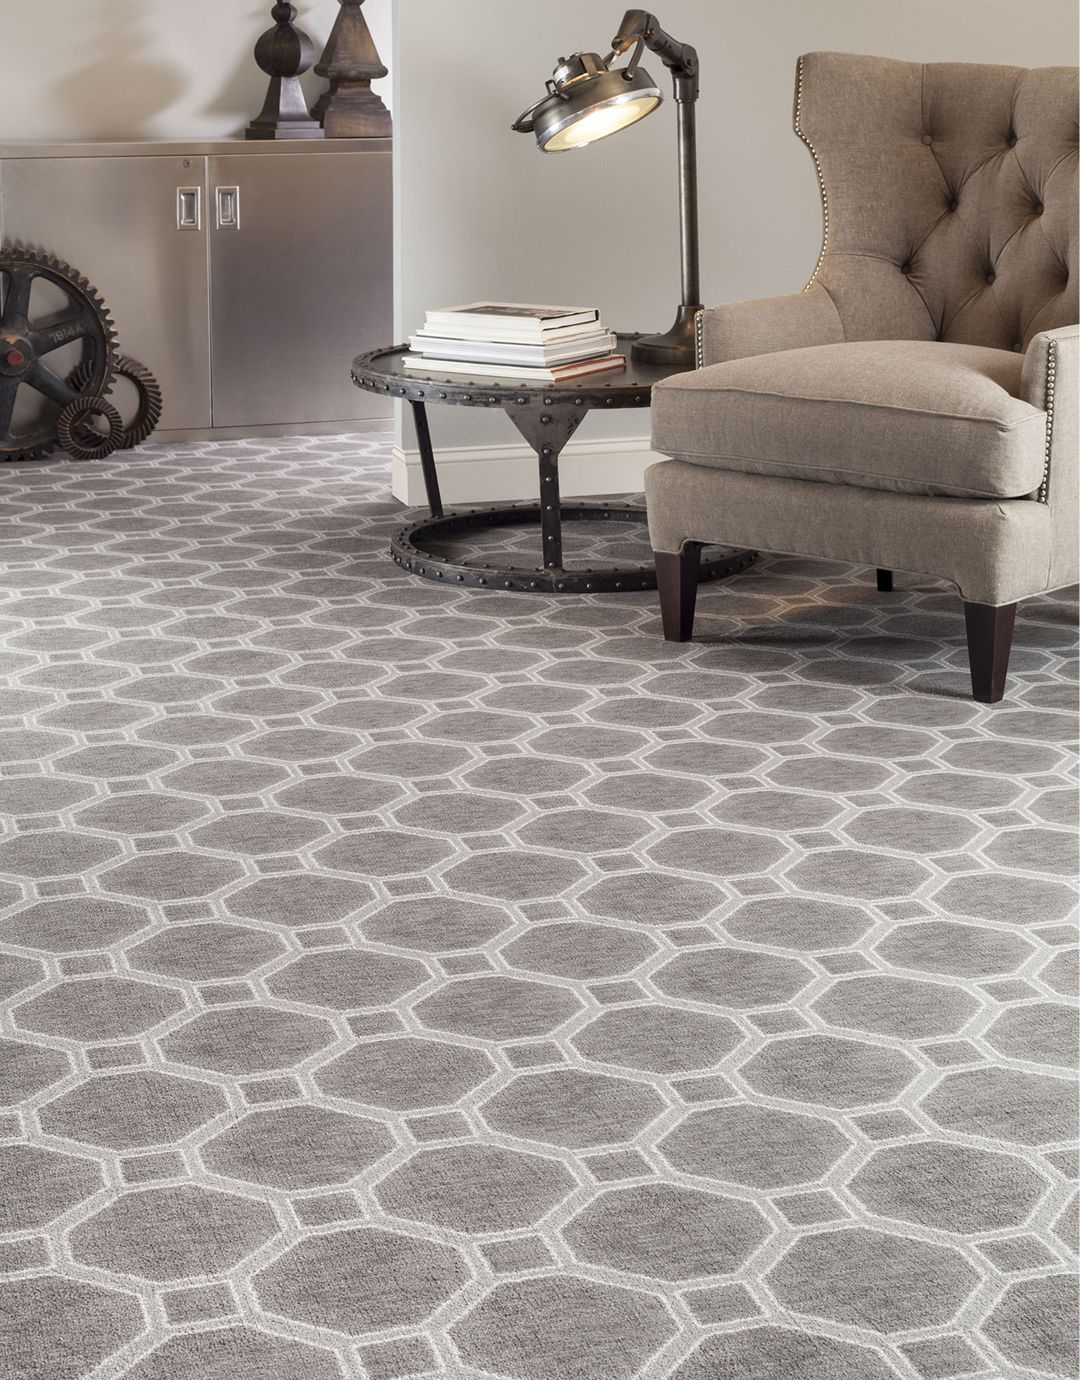 If your style is more industrial, patterned carpet can add